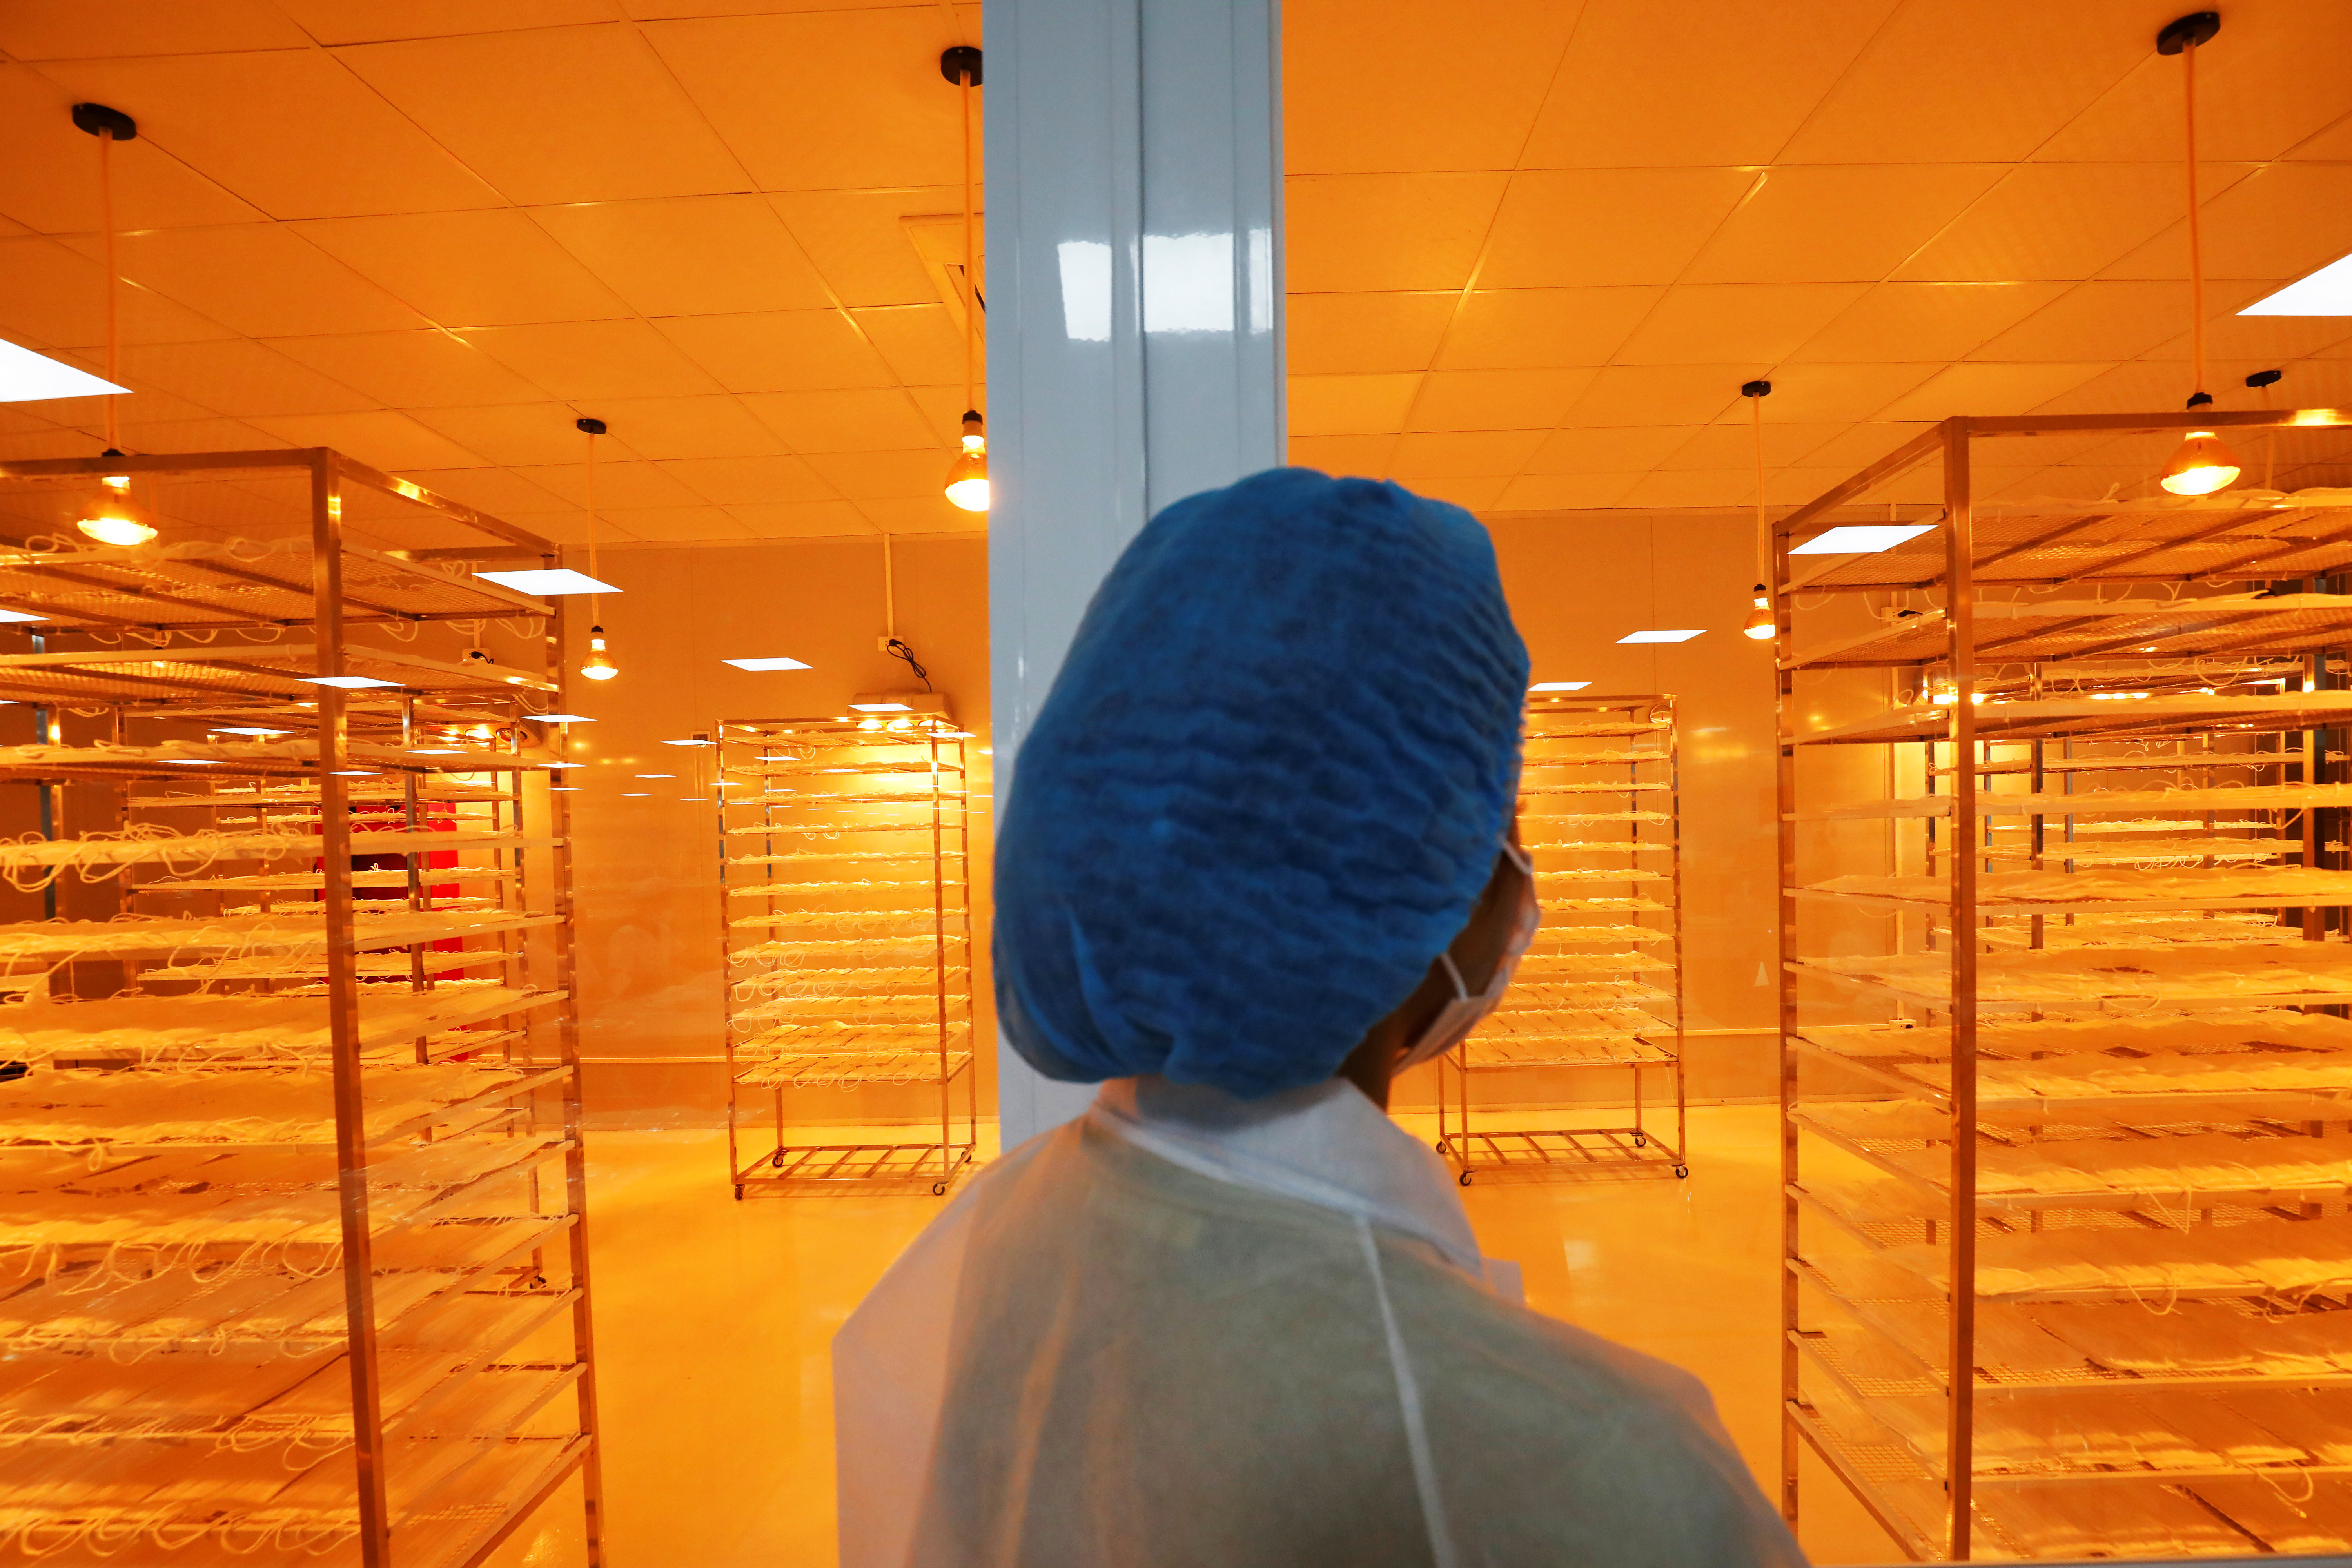 A woman checks medical protective masks under infrared light at An Phu company's production facility for domestic and international markets, amid of the spread of the coronavirus disease (COVID-19), in Bac Ninh province, Vietnam August 5, 2020. REUTERS/Kham